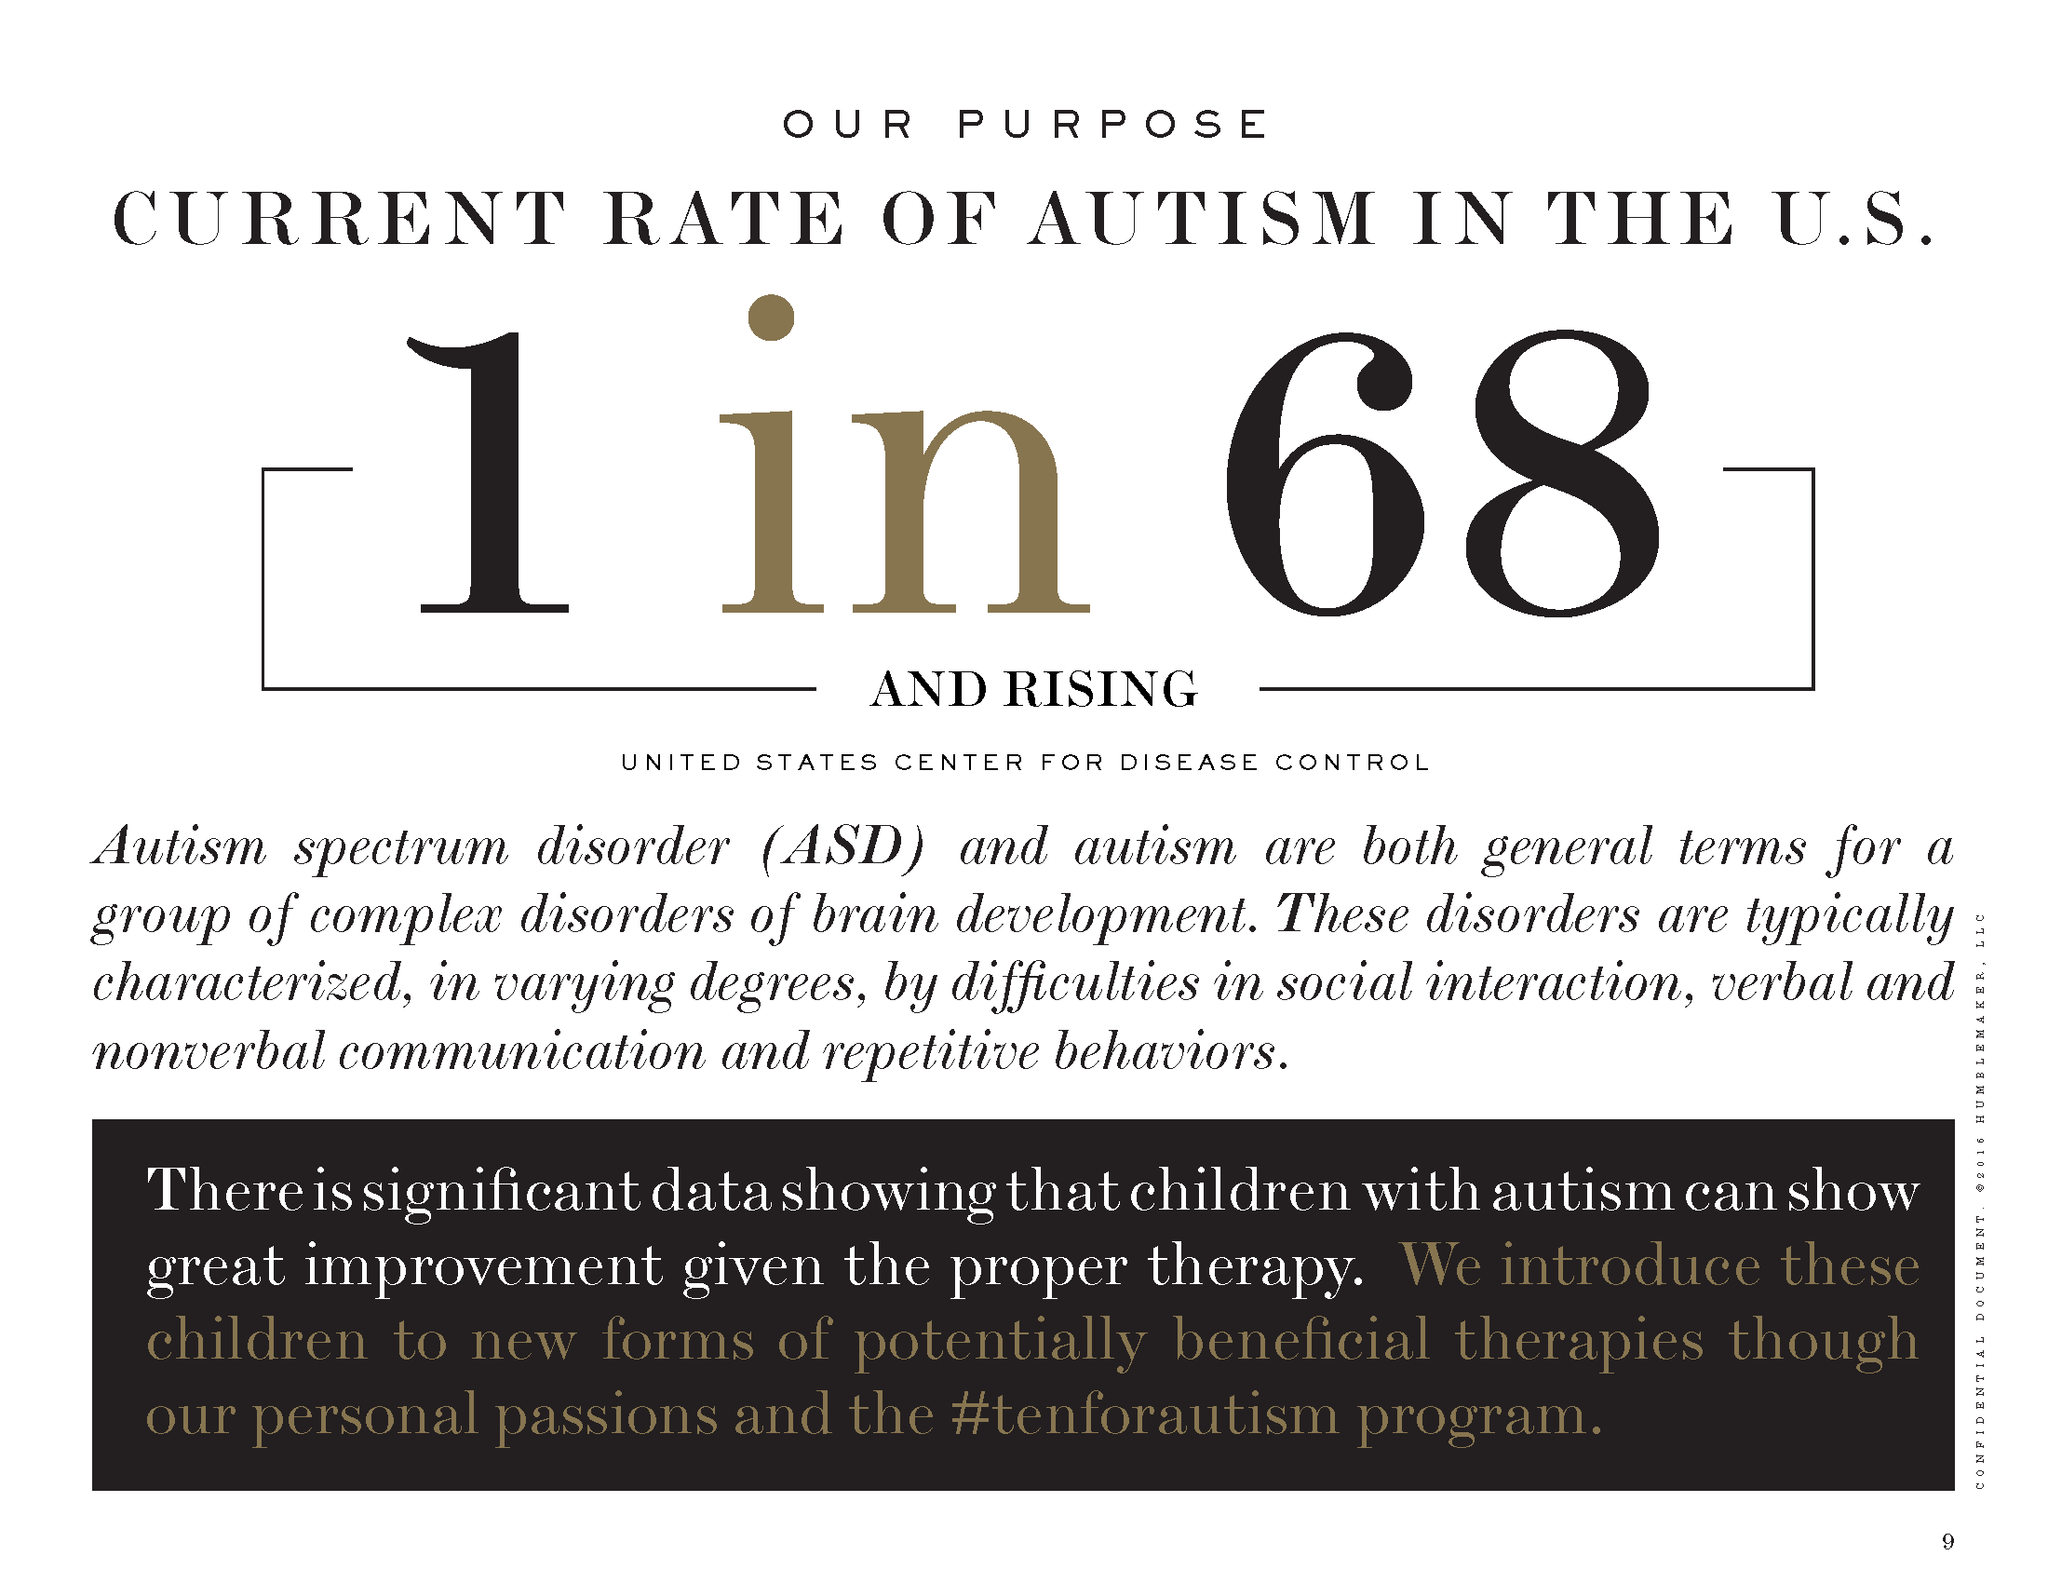 #tenforautism Current Rate of Autism in the USA 1 in 68